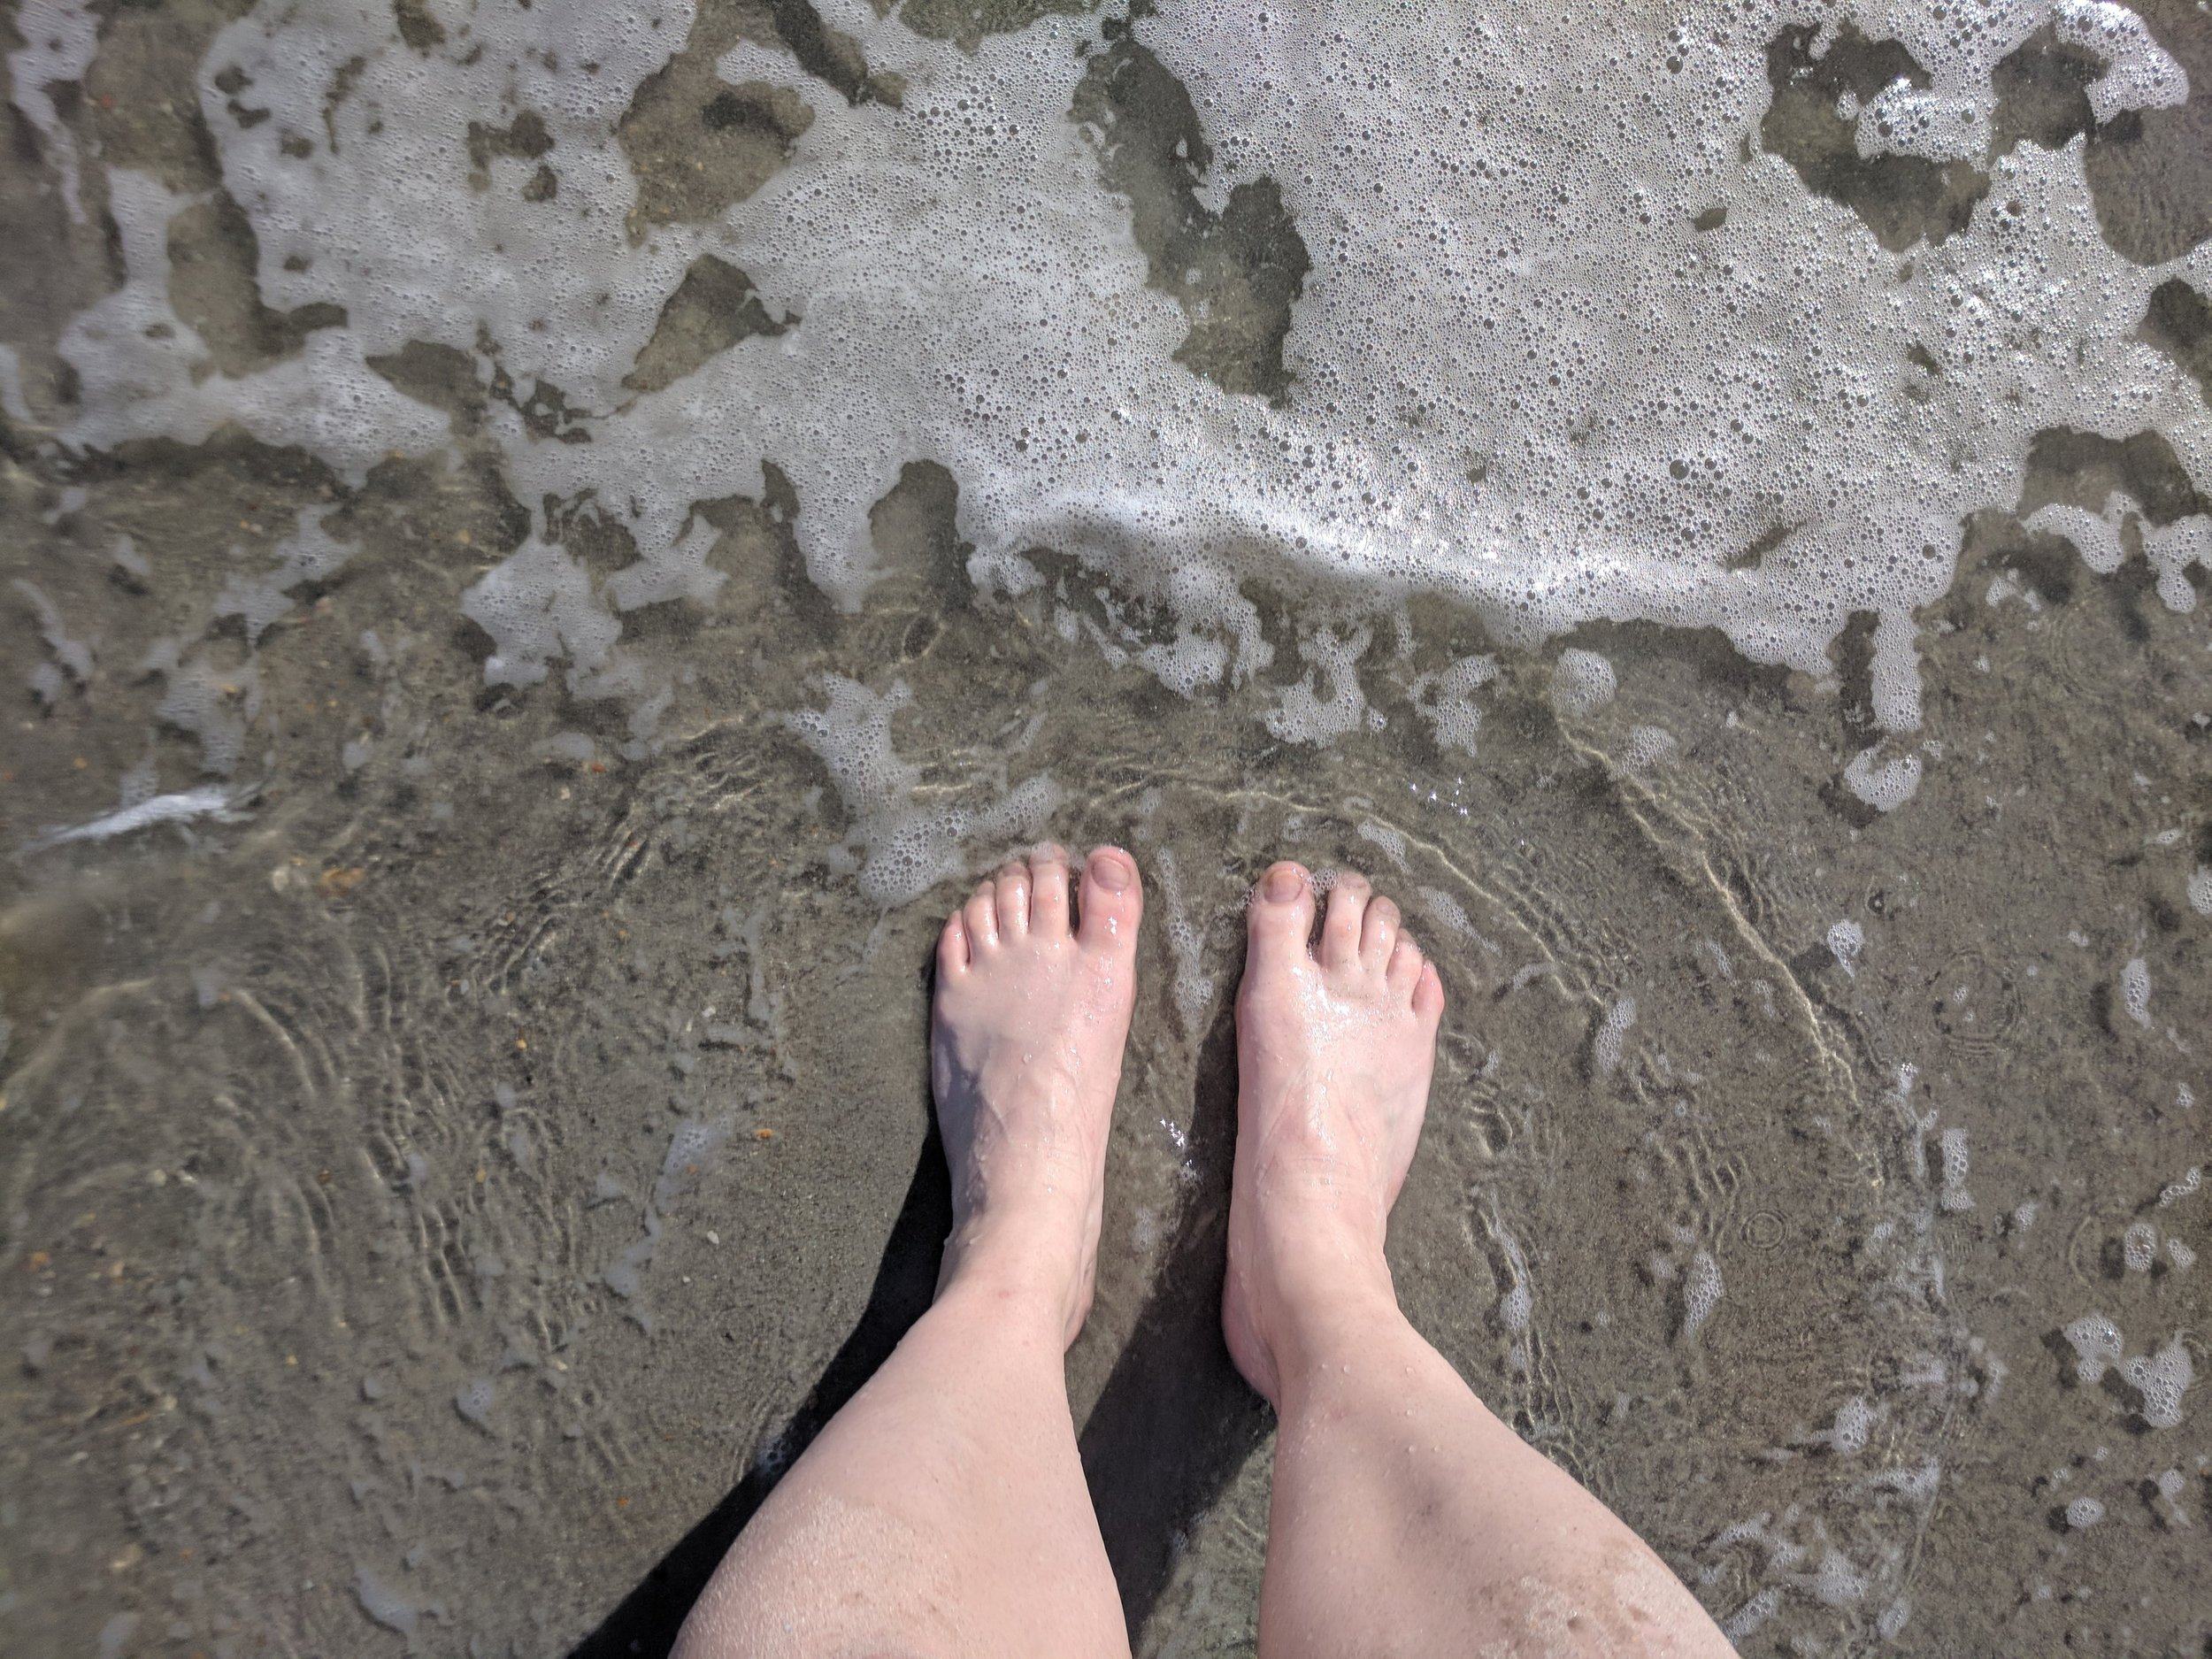 I ran all the way to the beach so I might as well stick my toes in the water.